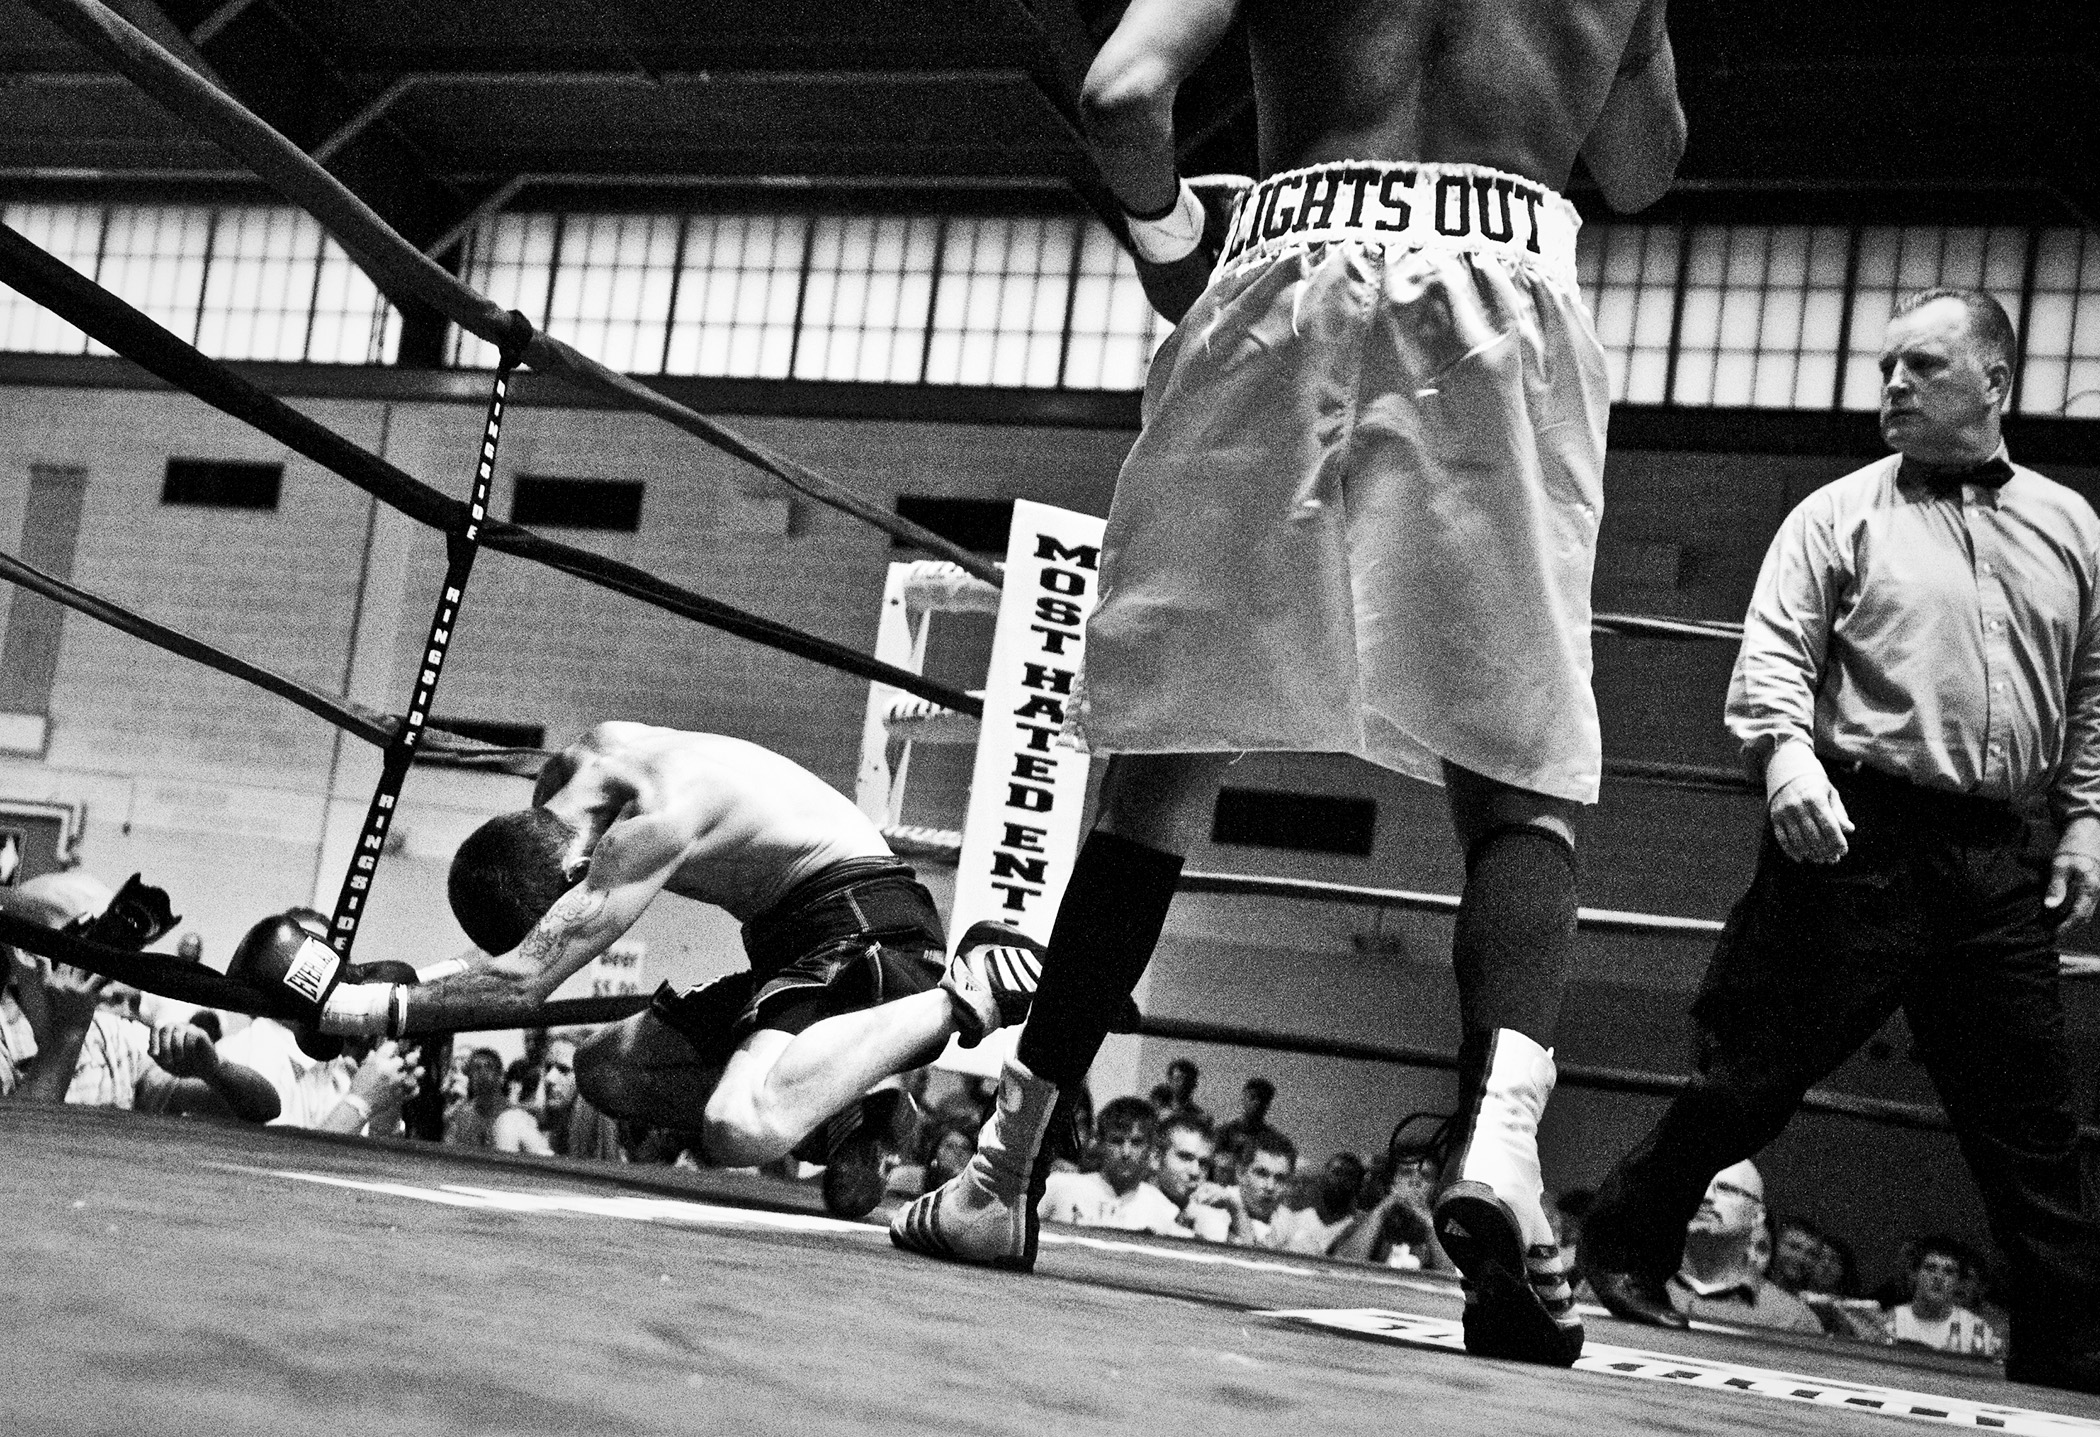 """Jeremy """"Lights Out"""" McLaurin knocks out Randy Ronchi after 56 seconds in the ring at the Glory Event on July 25, 2009 at the St. Paul Armory."""